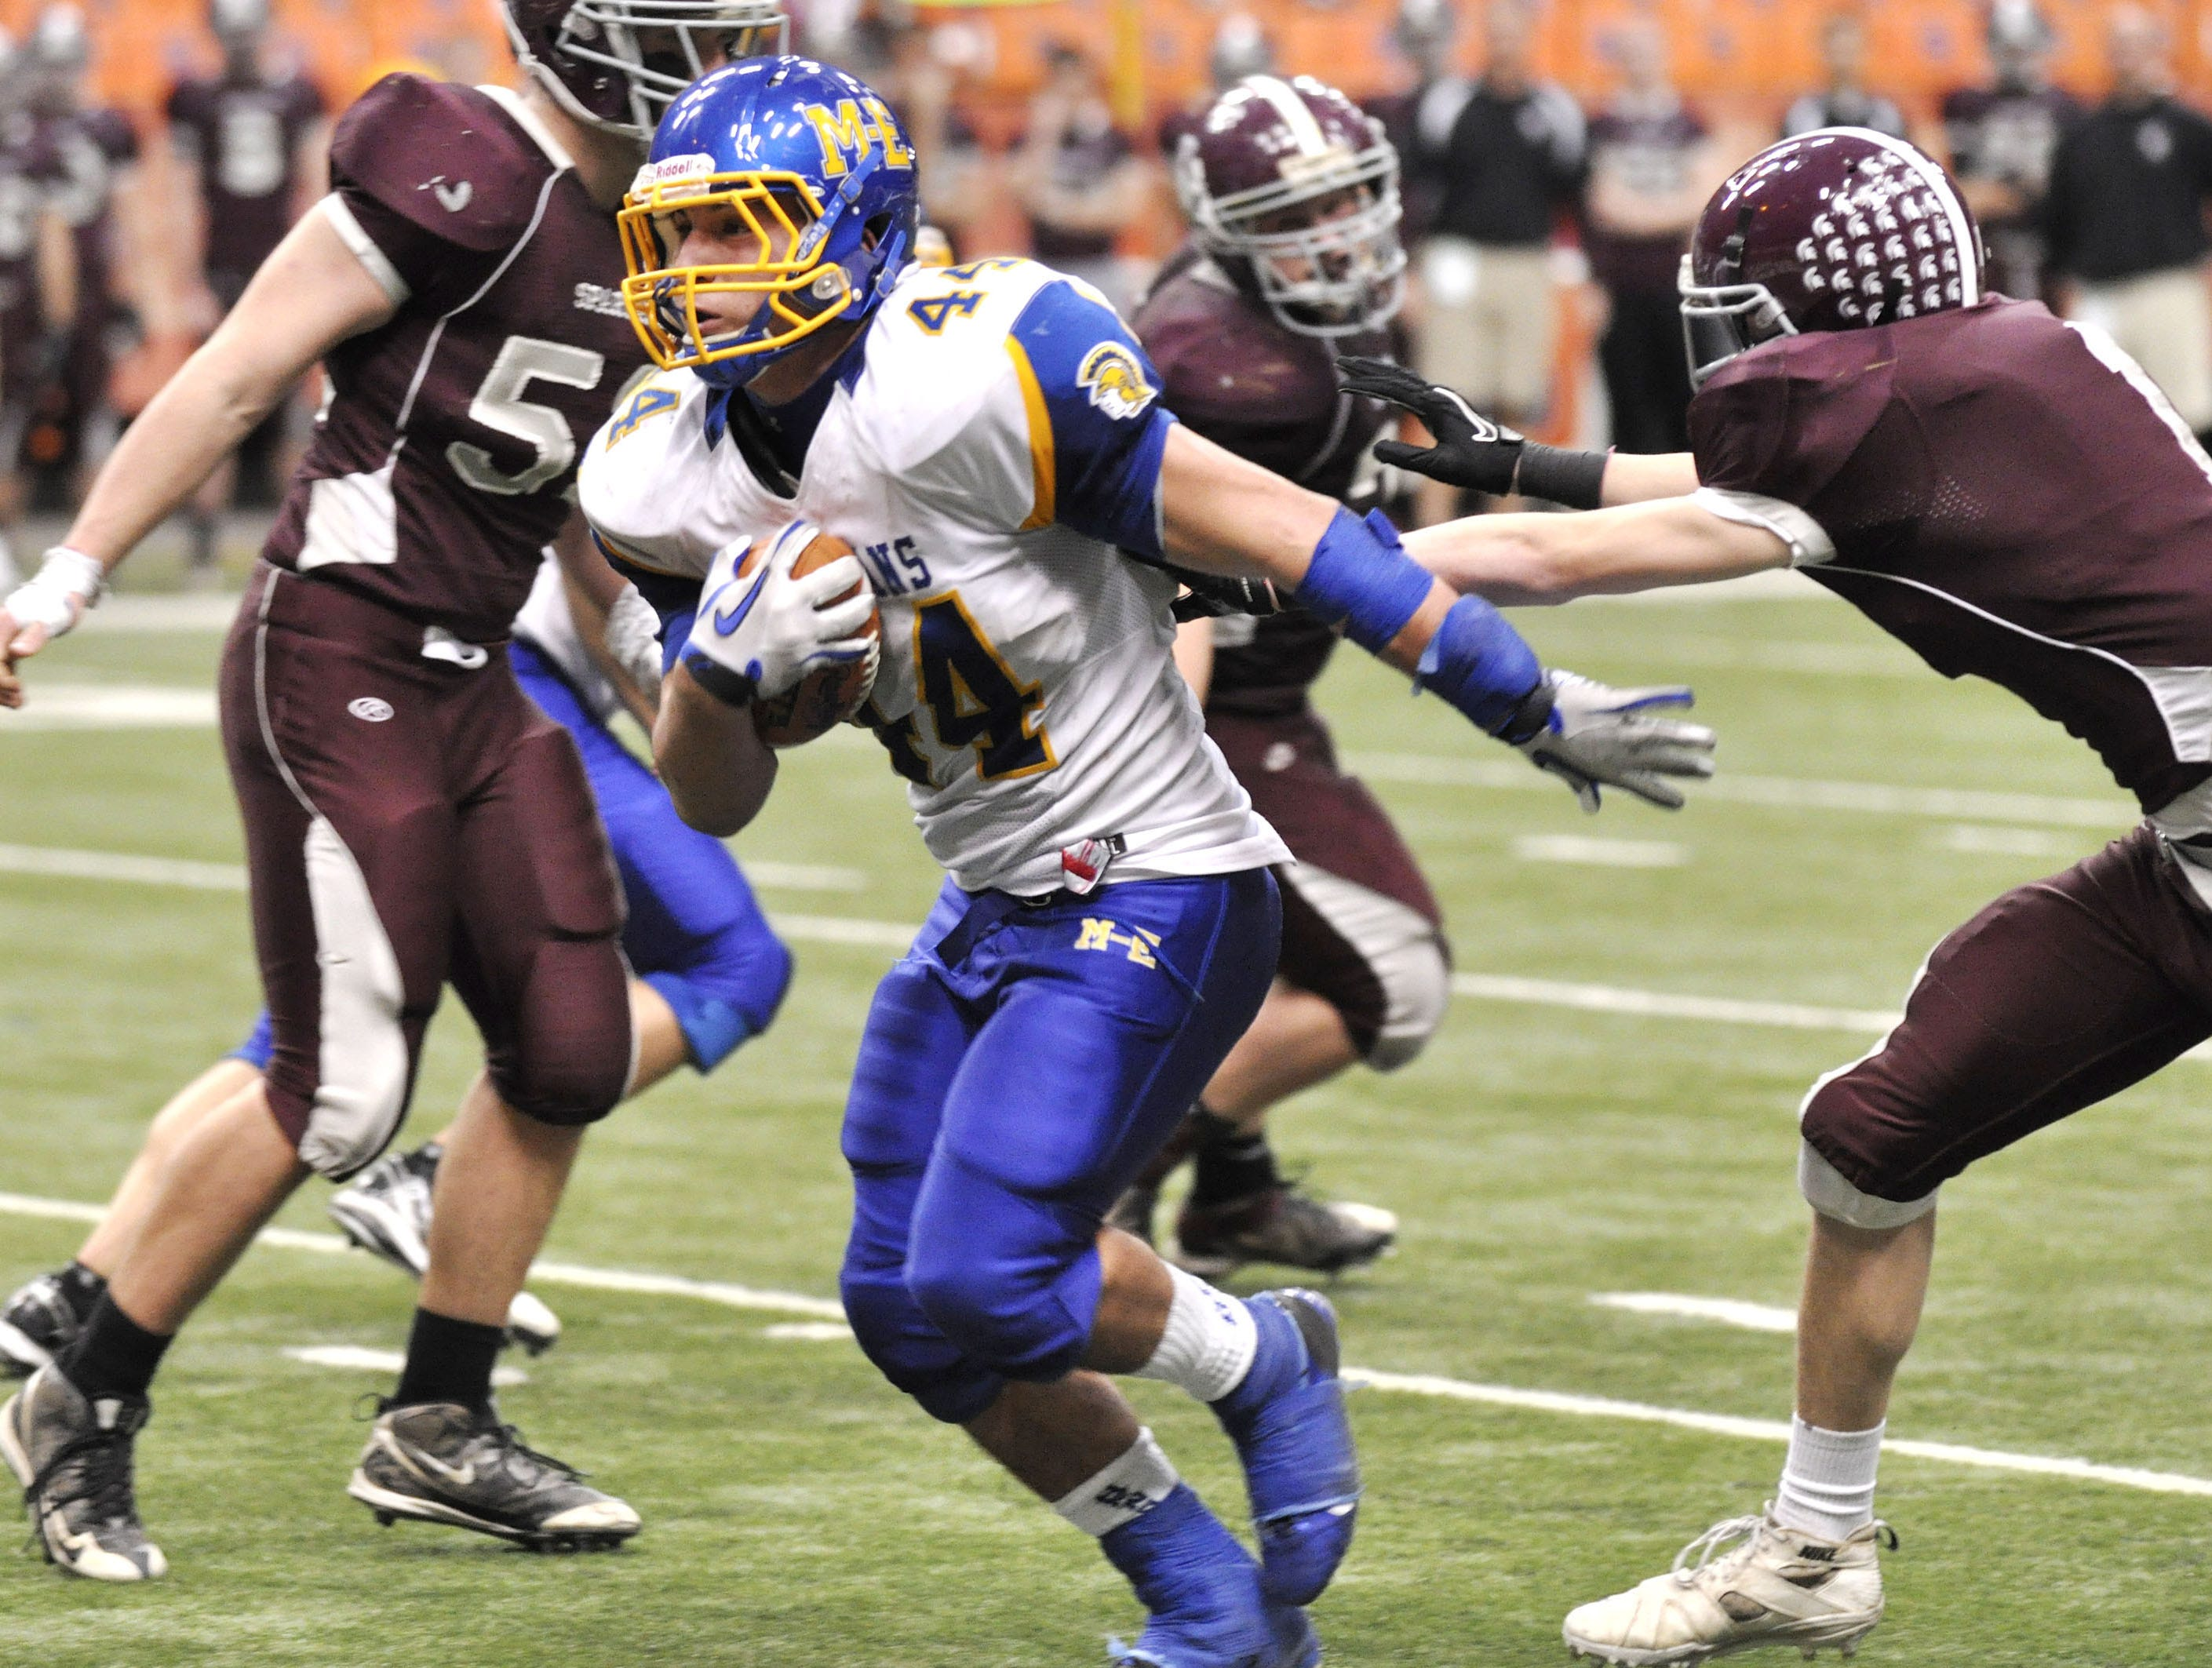 Maine-Endwell's Nick Sorrenti runs for a touchdown during the fourth quarter against Burnt Hills-Ballston Lake in the Class A New York State High School football championship game in Syracuse, N.Y., Friday, Nov. 25, 2011.